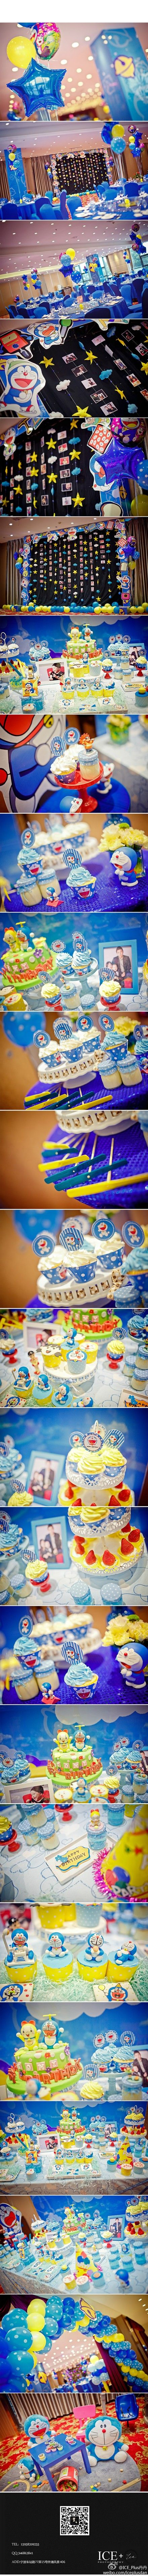 Doraemon birthday party